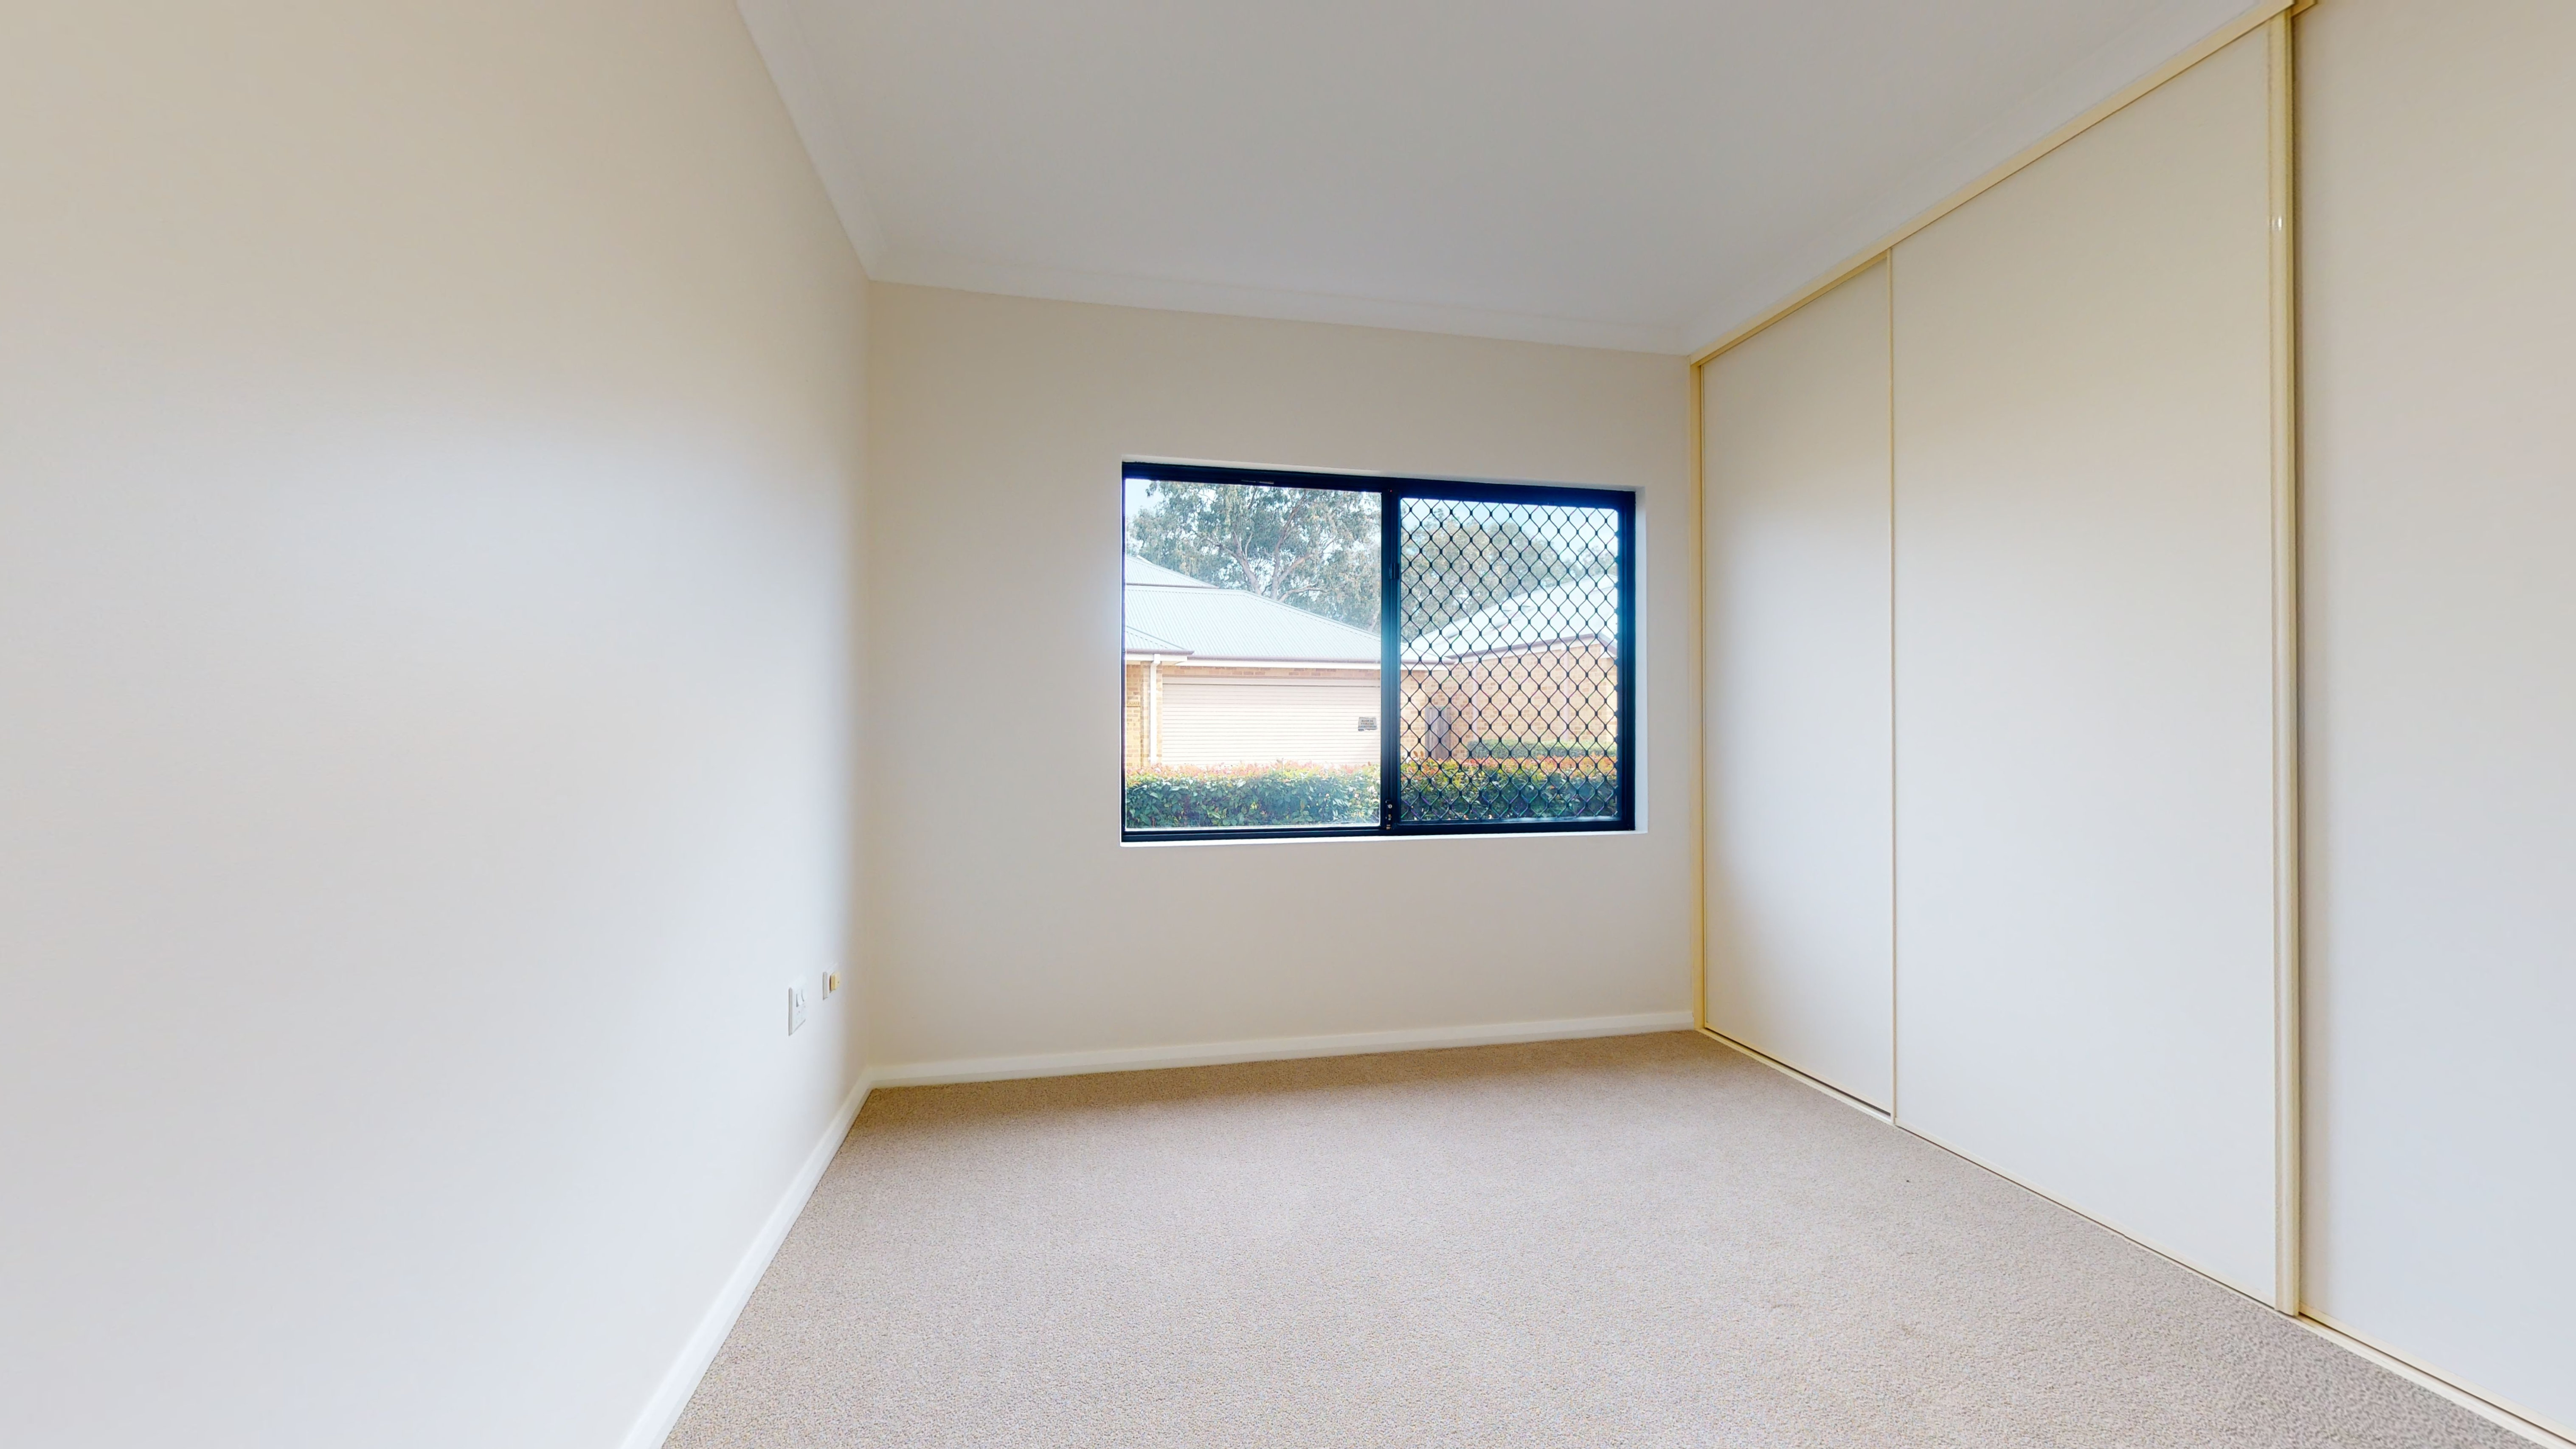 34748232 1626061626 31828 96 22 Carnegie Place Greenfields Main Bedroom2